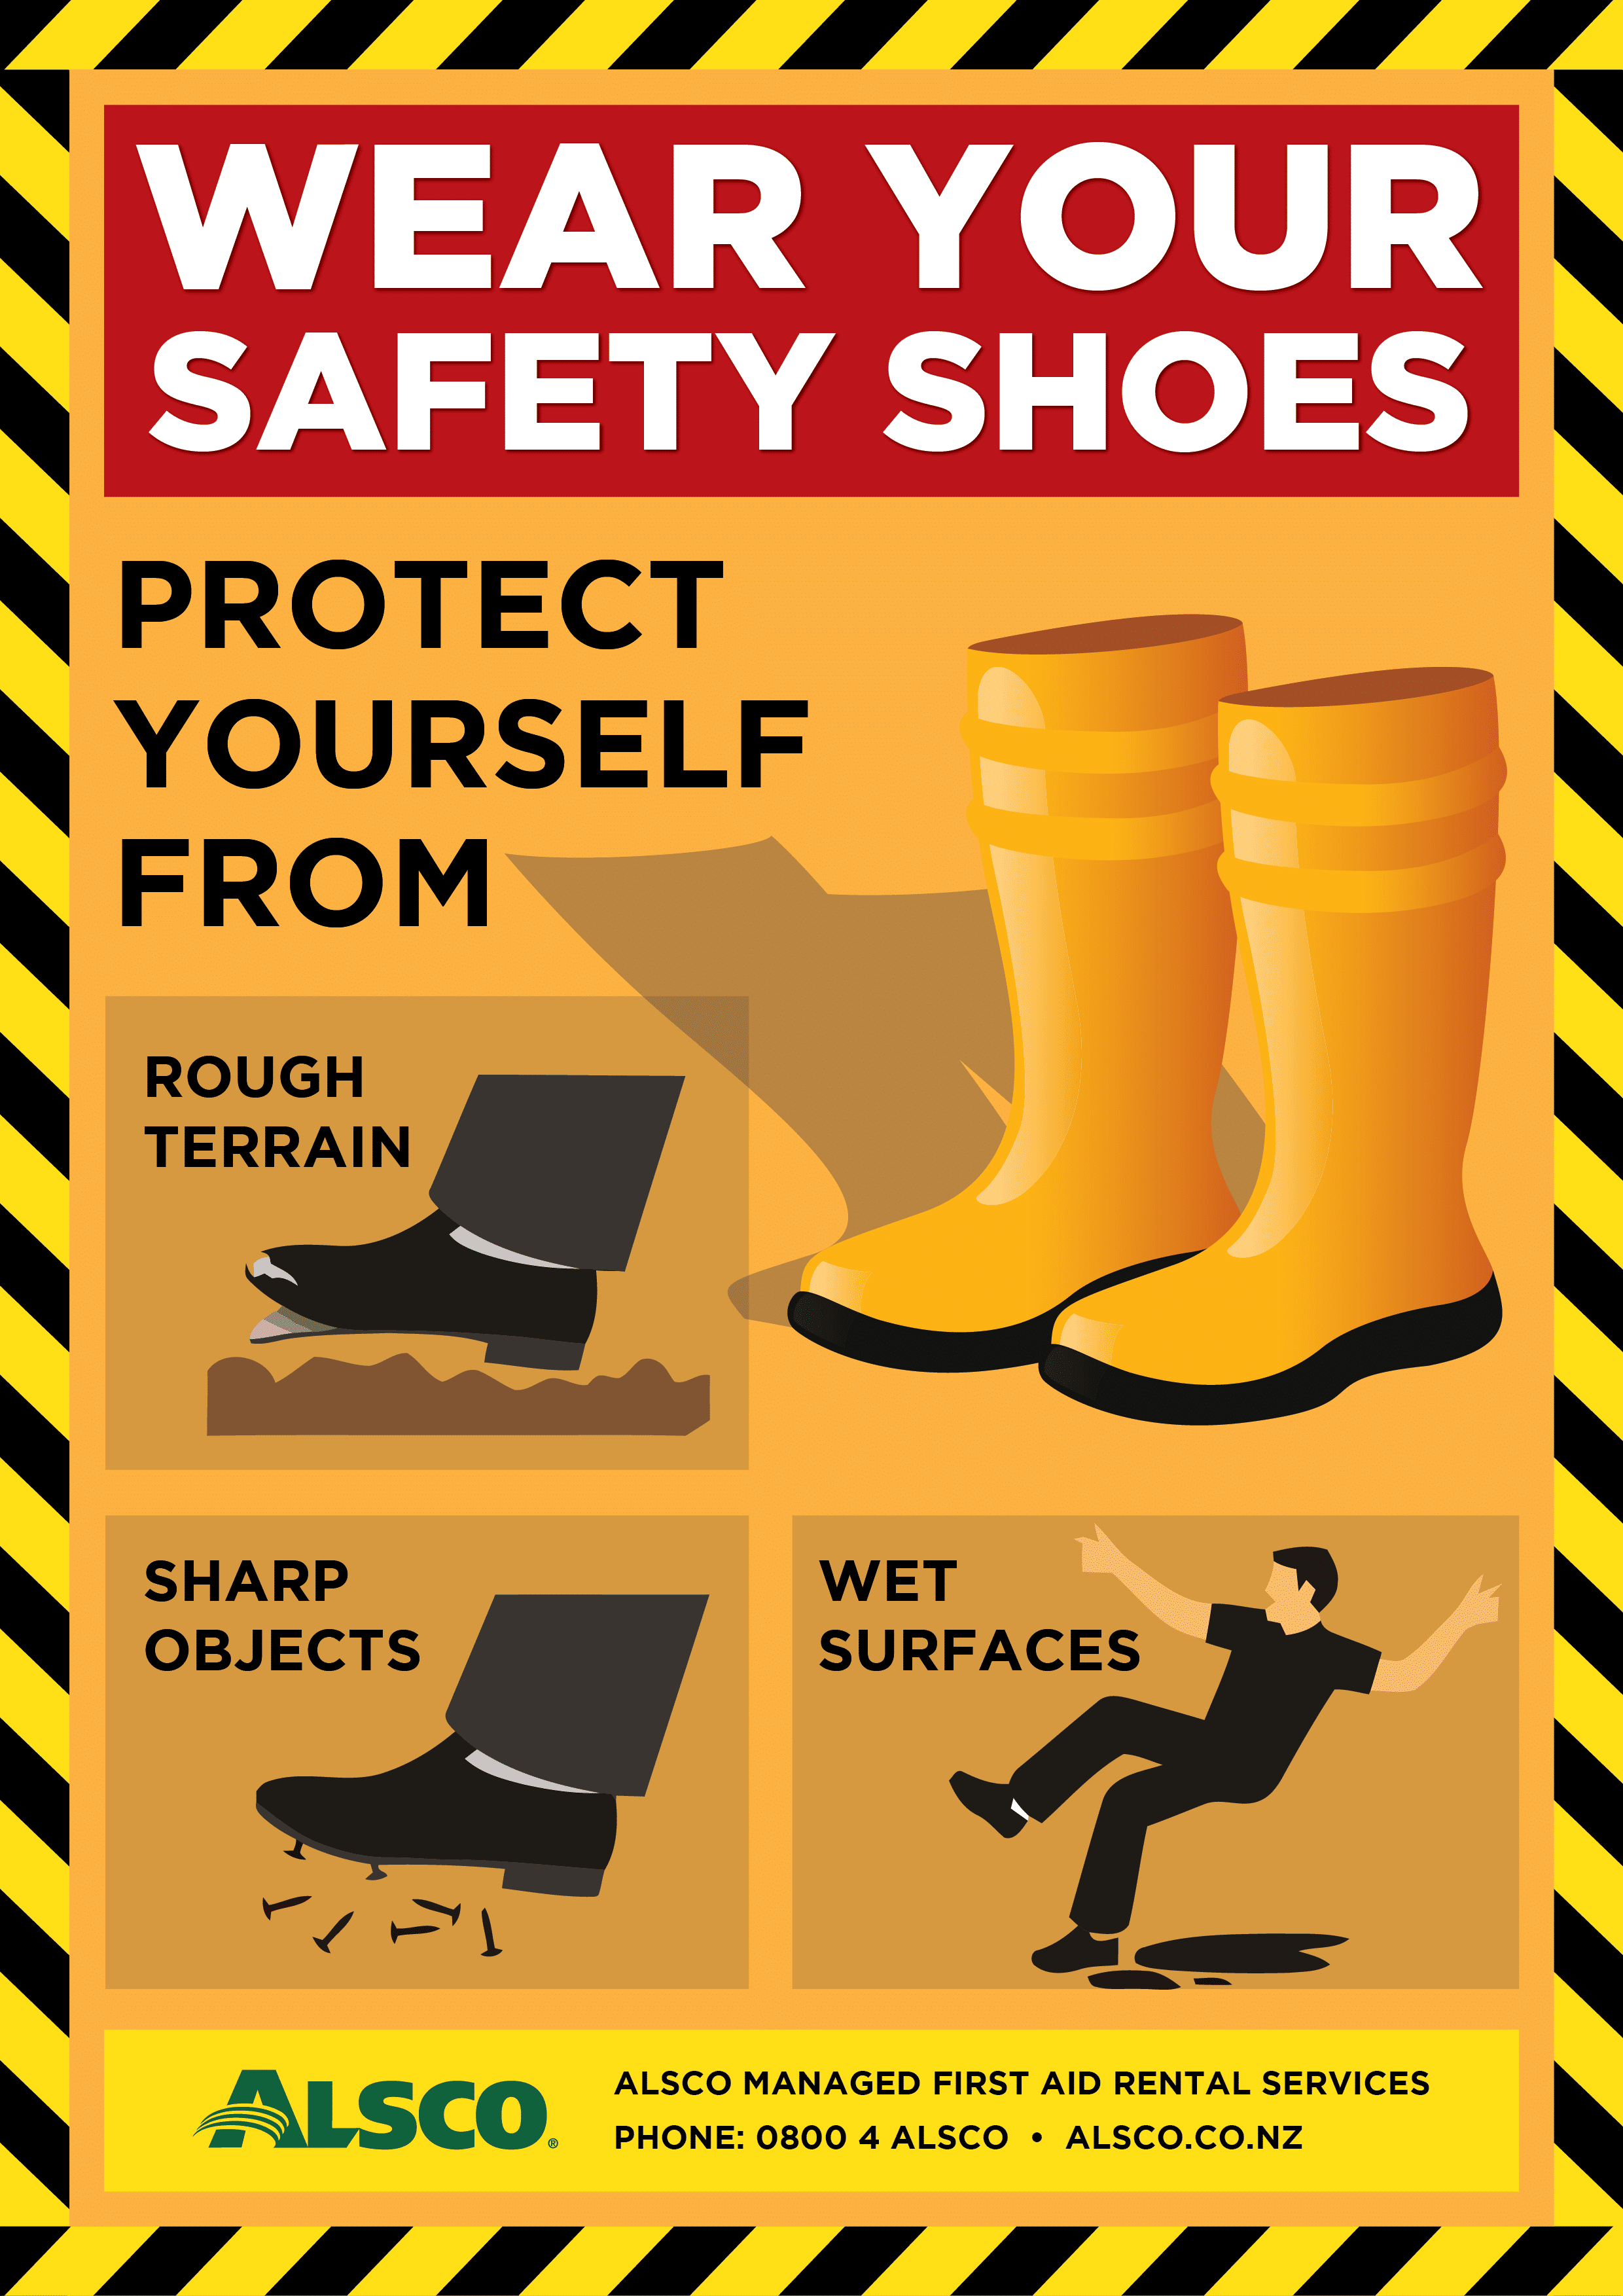 Related image Safety pictures, Workplace safety, Safety